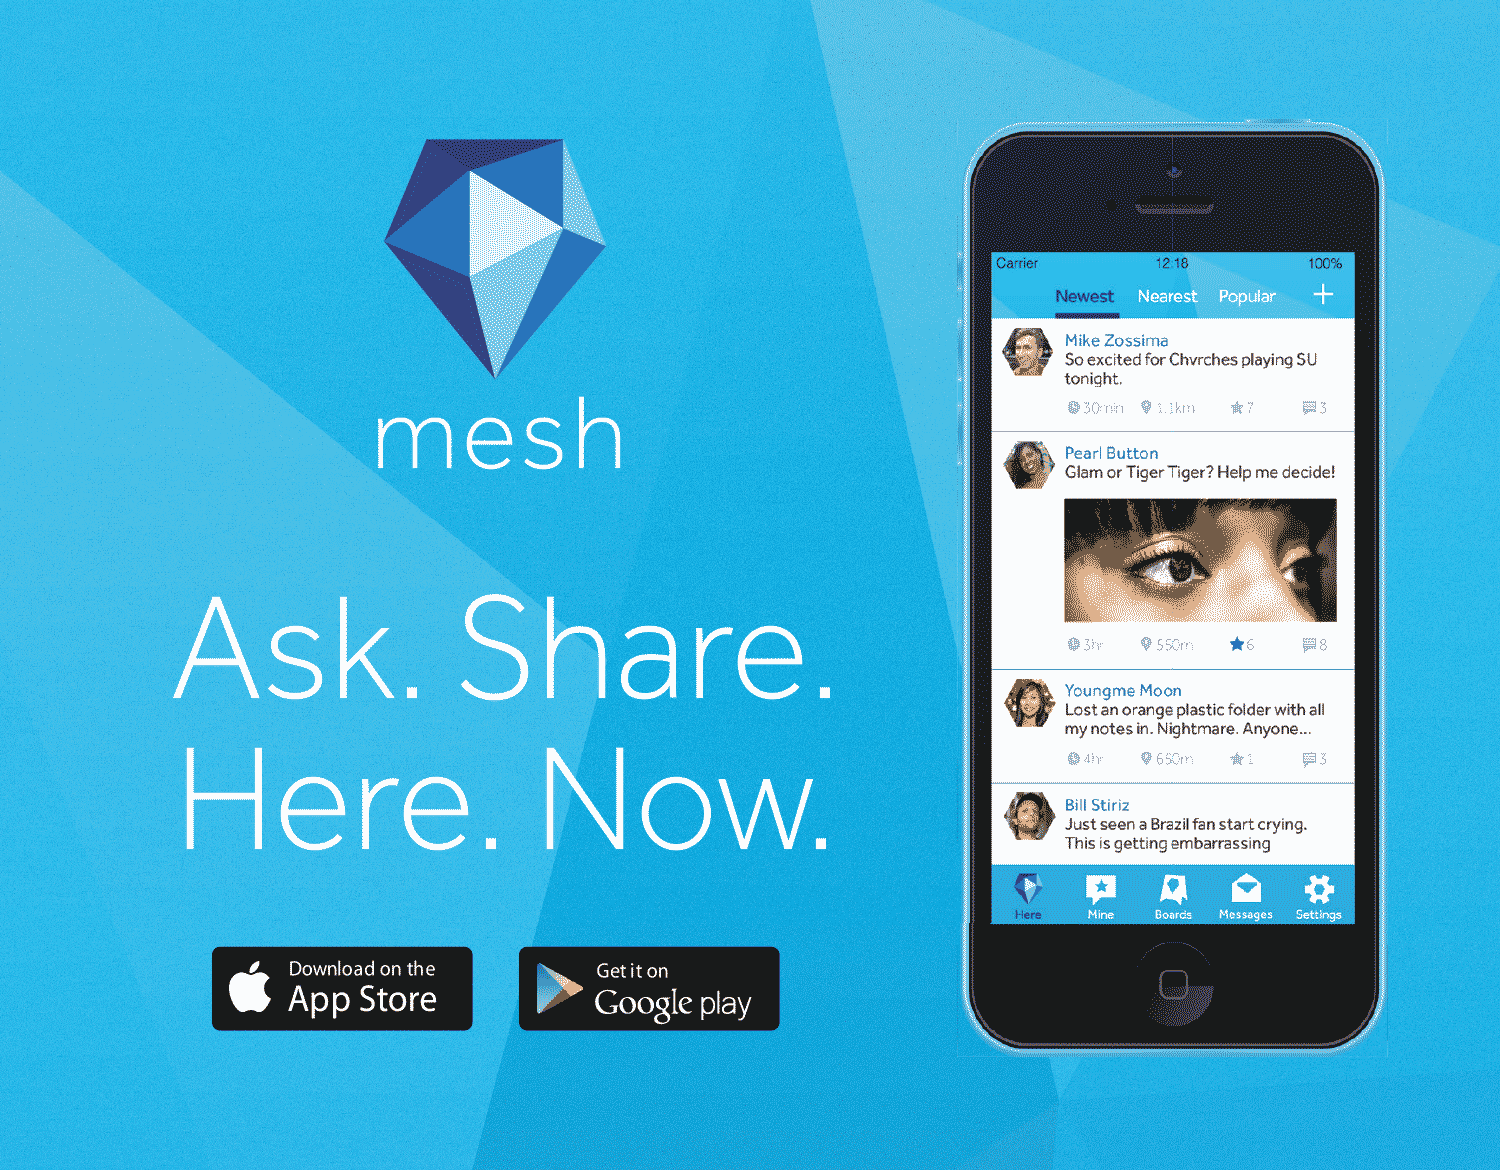 Mesh - Ask. Share. Here. Now